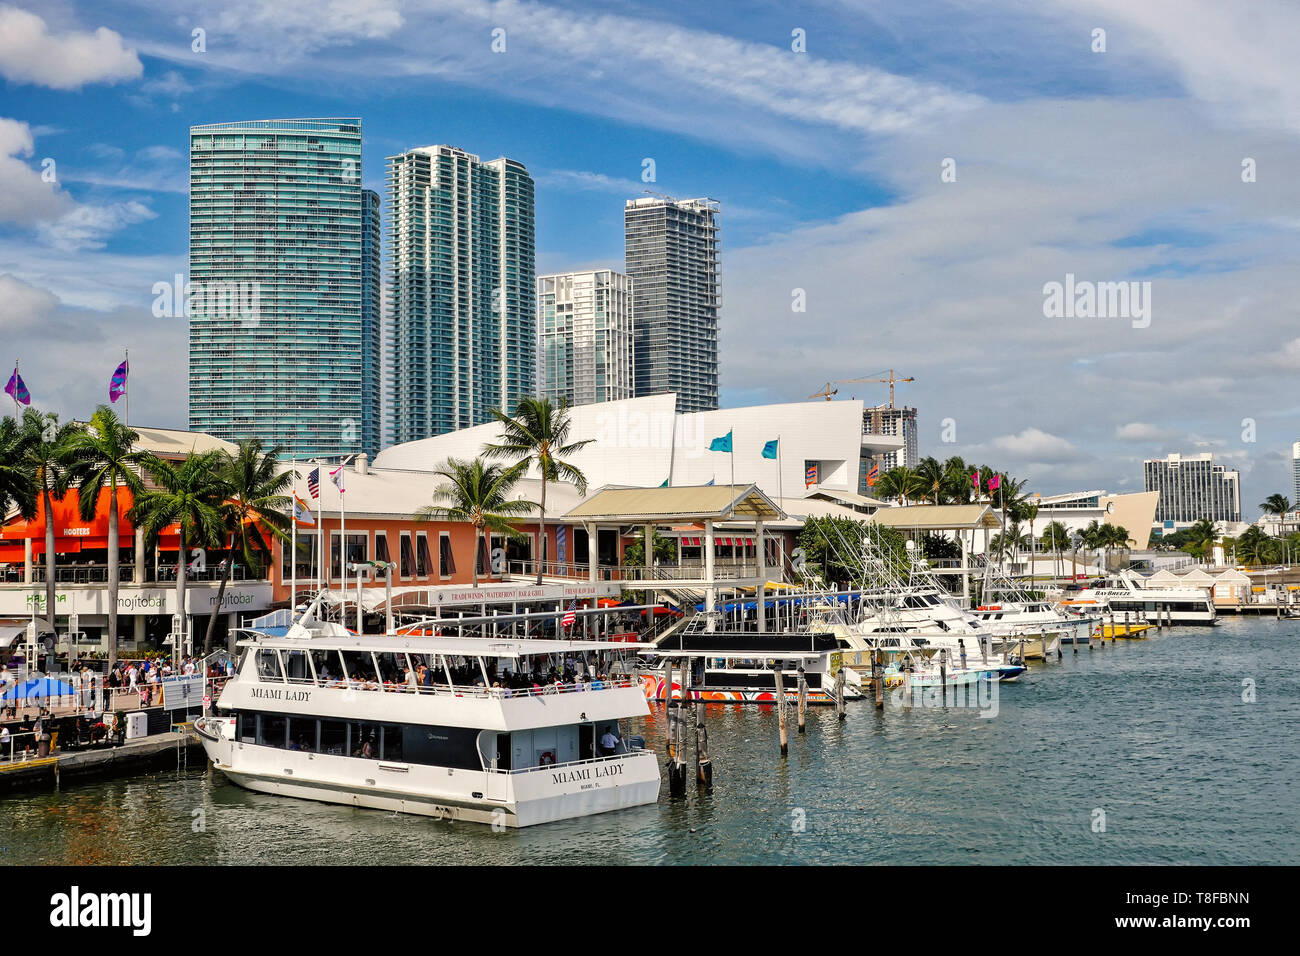 Miami, USA - February 22, 2016: ships with tourists on water in city harbor and skyscrapers on blue sky background at bayside, Miami. Summer vacation and cruising. Travelling and adventure. - Stock Image